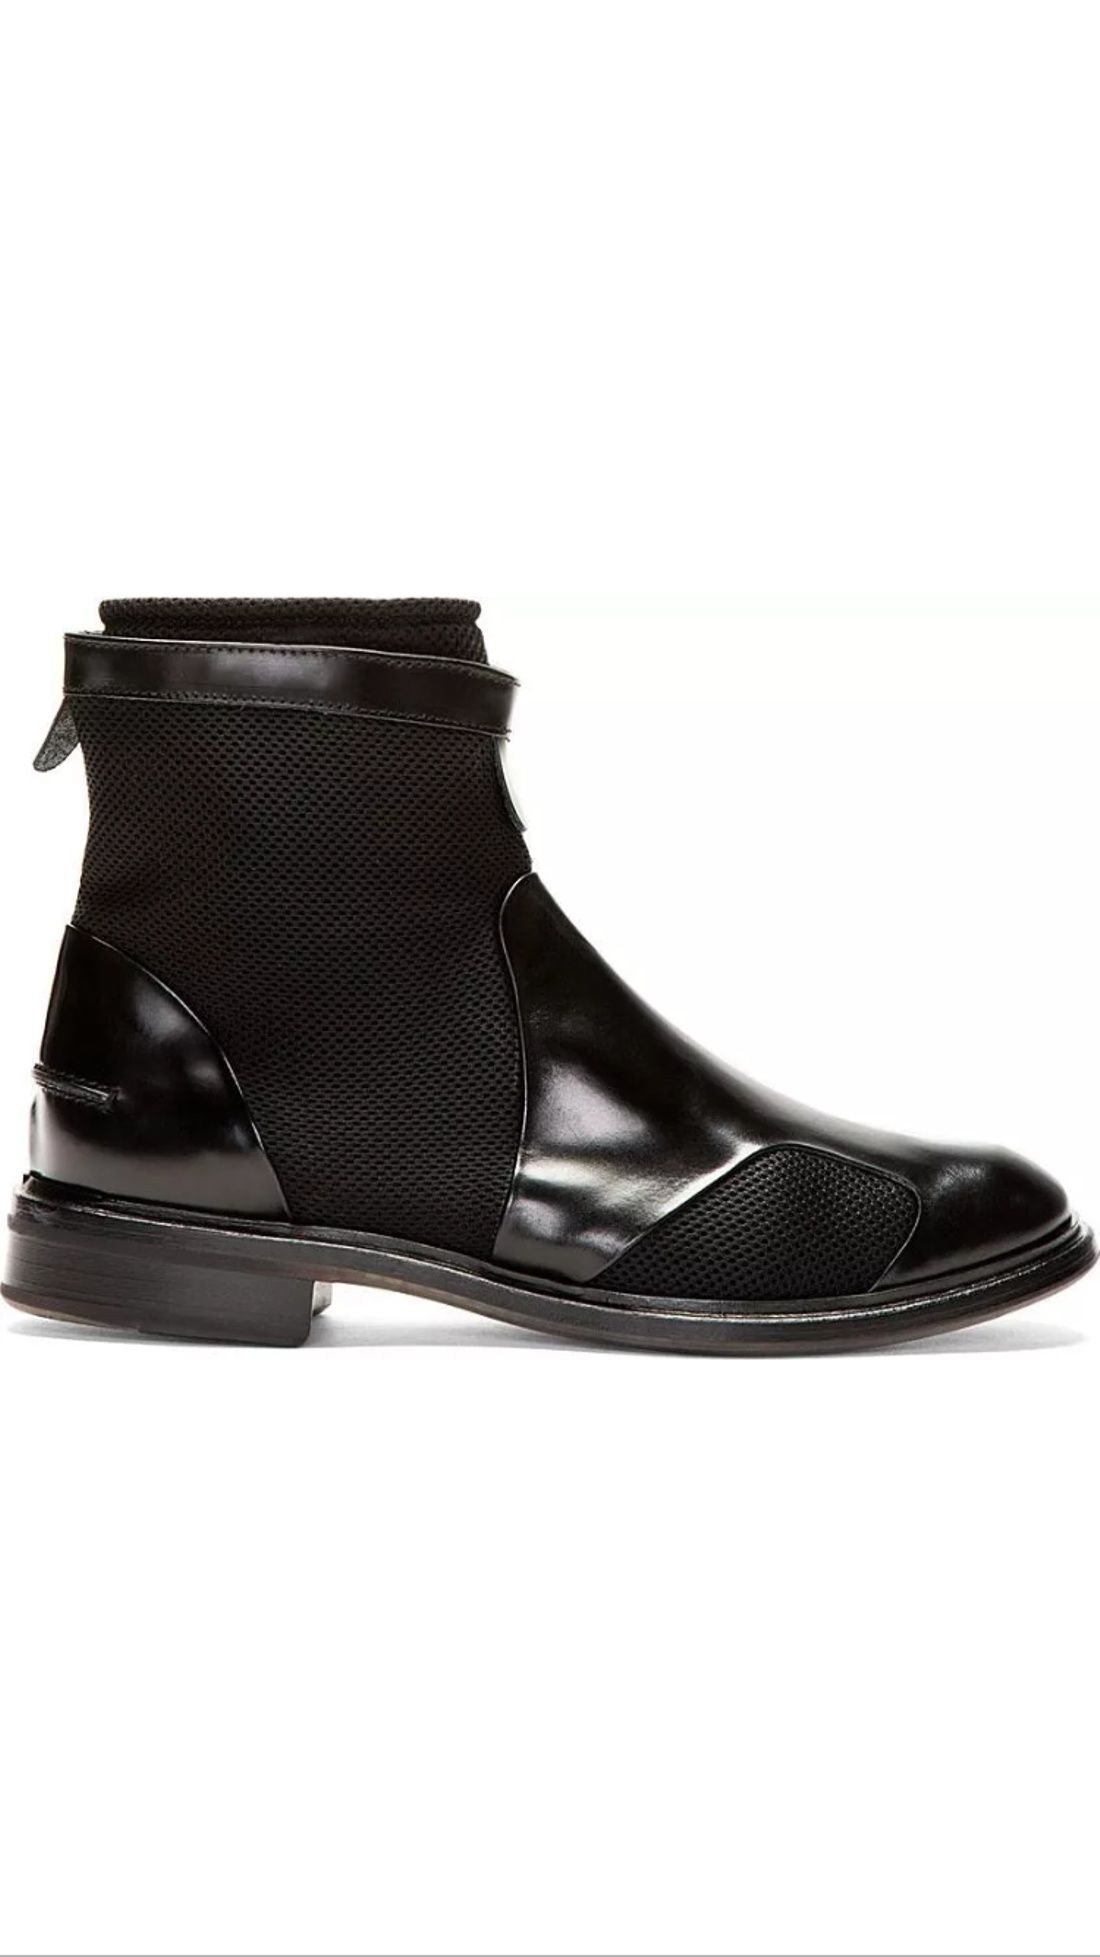 Paul Smith Brand new in box ~$800 Paul Smith leather boots Size US 12 / EU 45